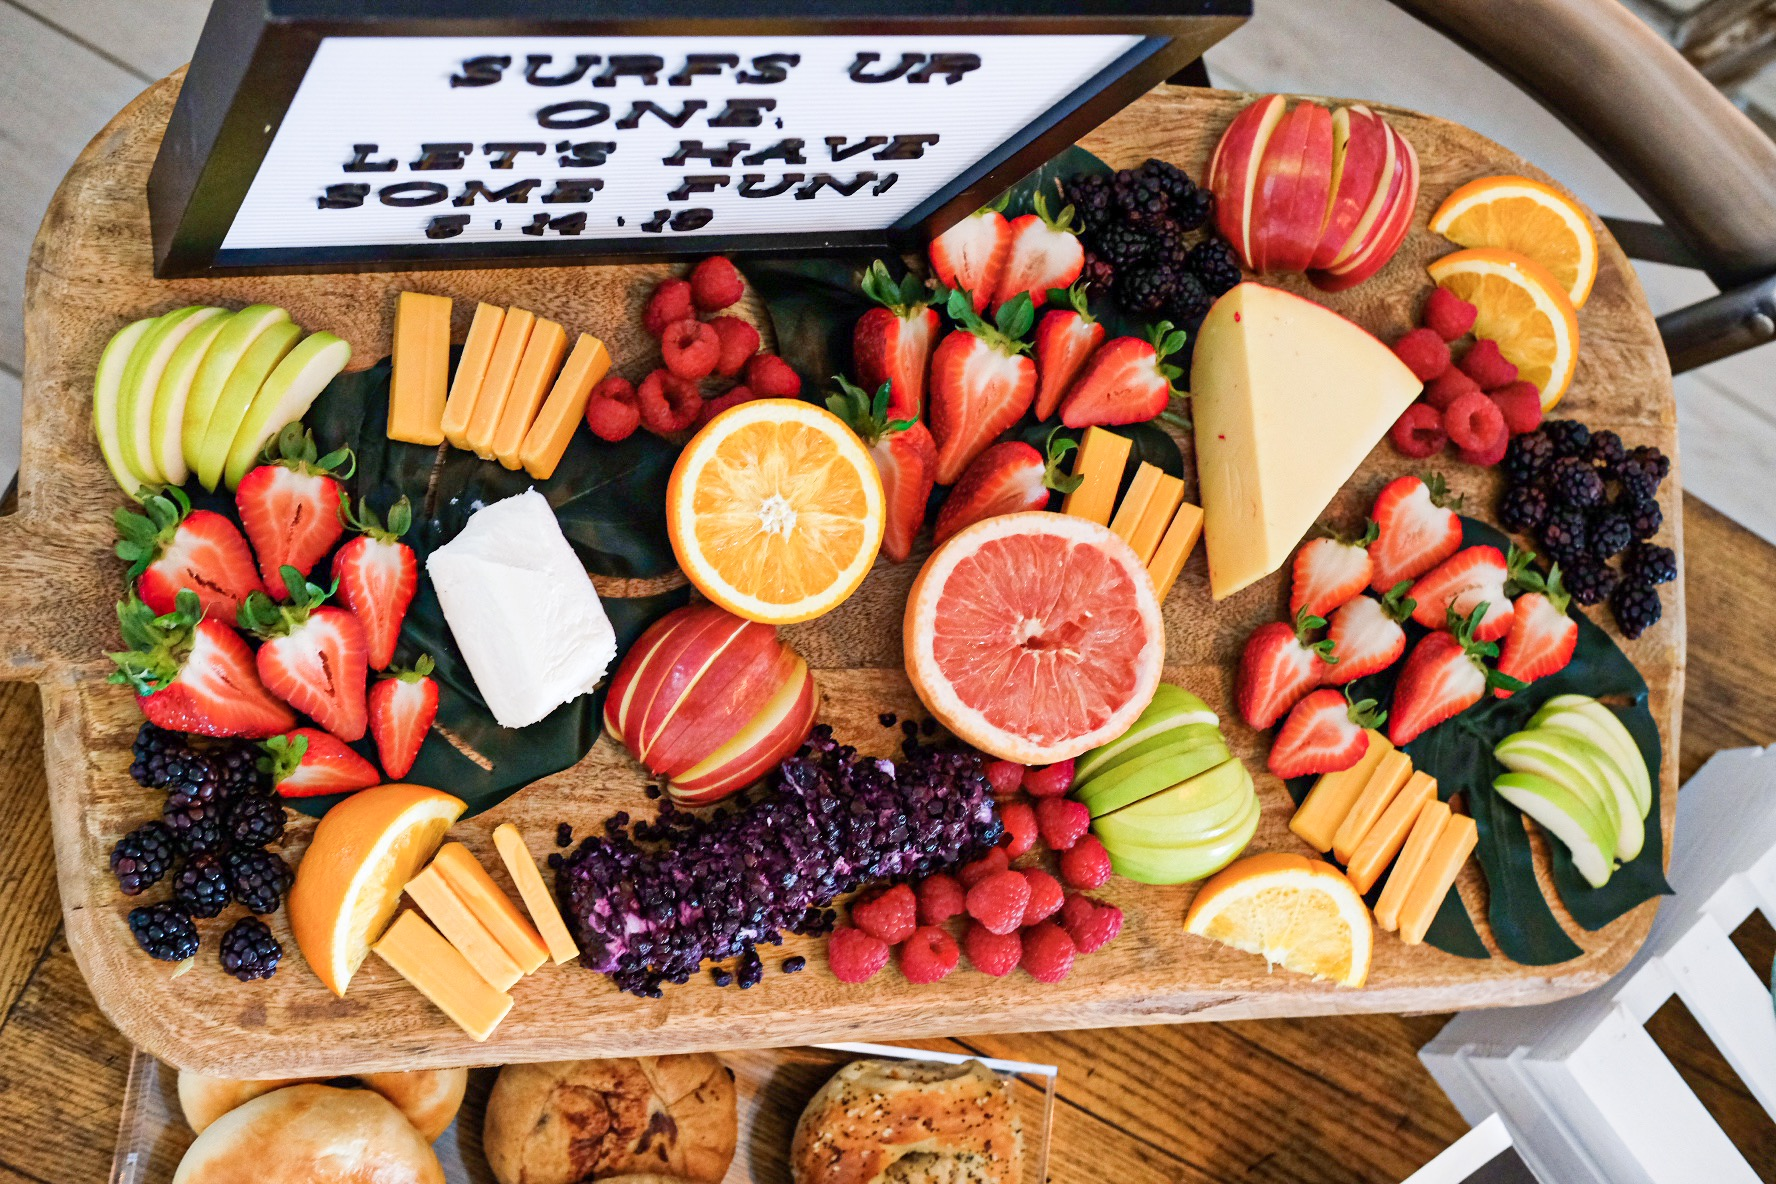 Brunch cheese board.  Pretty fruit and cheese plate. Shopping list for fruit and cheese board from Trader Joe's.